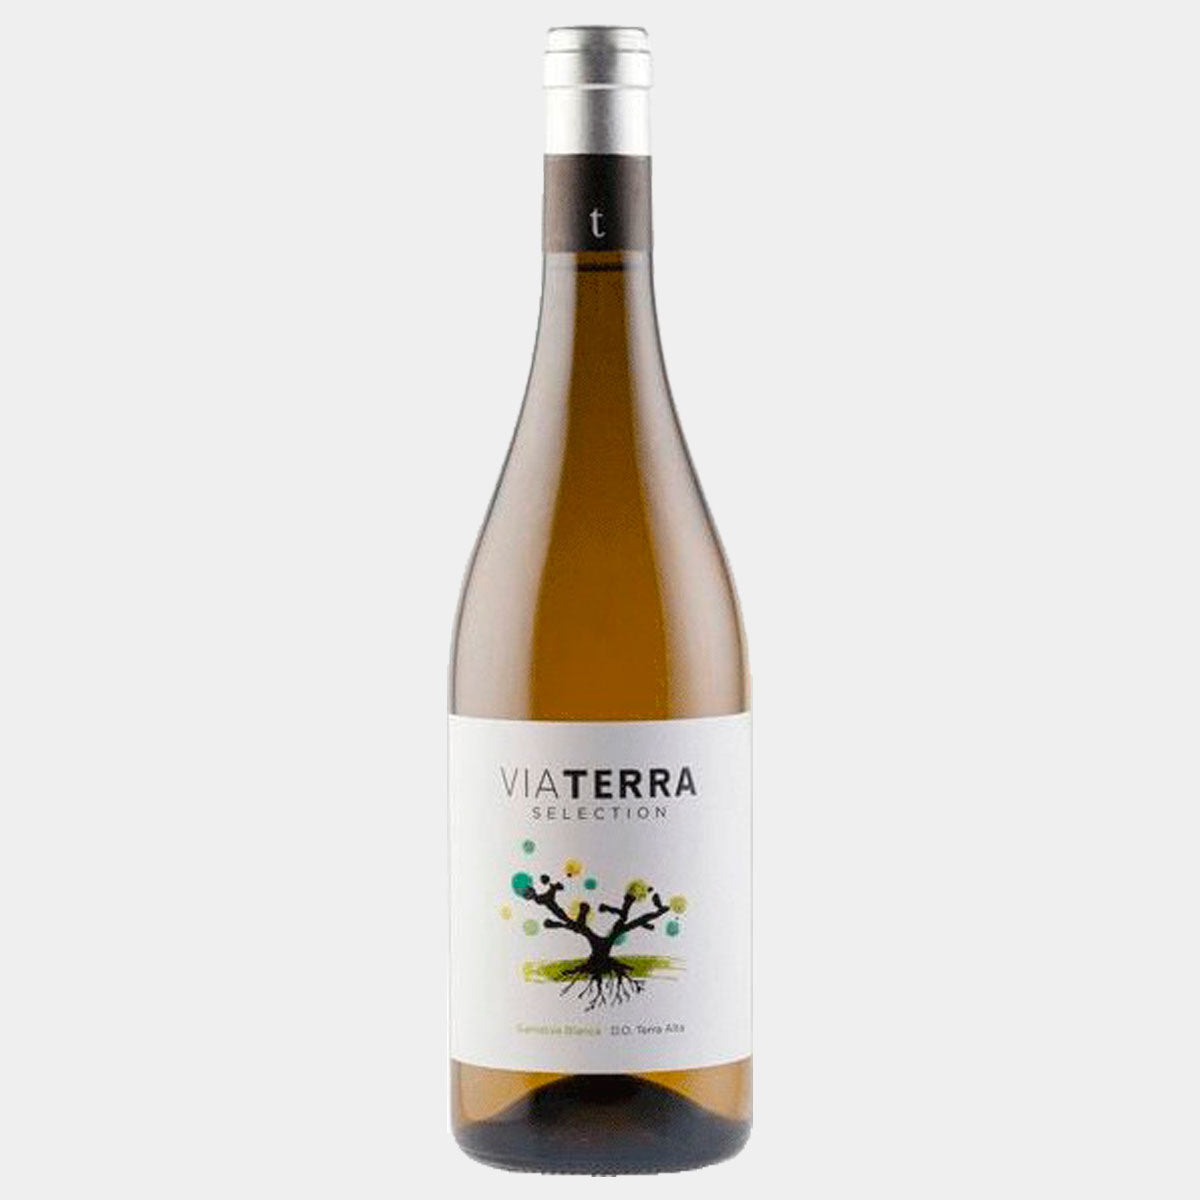 Edetaria Via Terra Blanc - Wines and Copas Barcelona